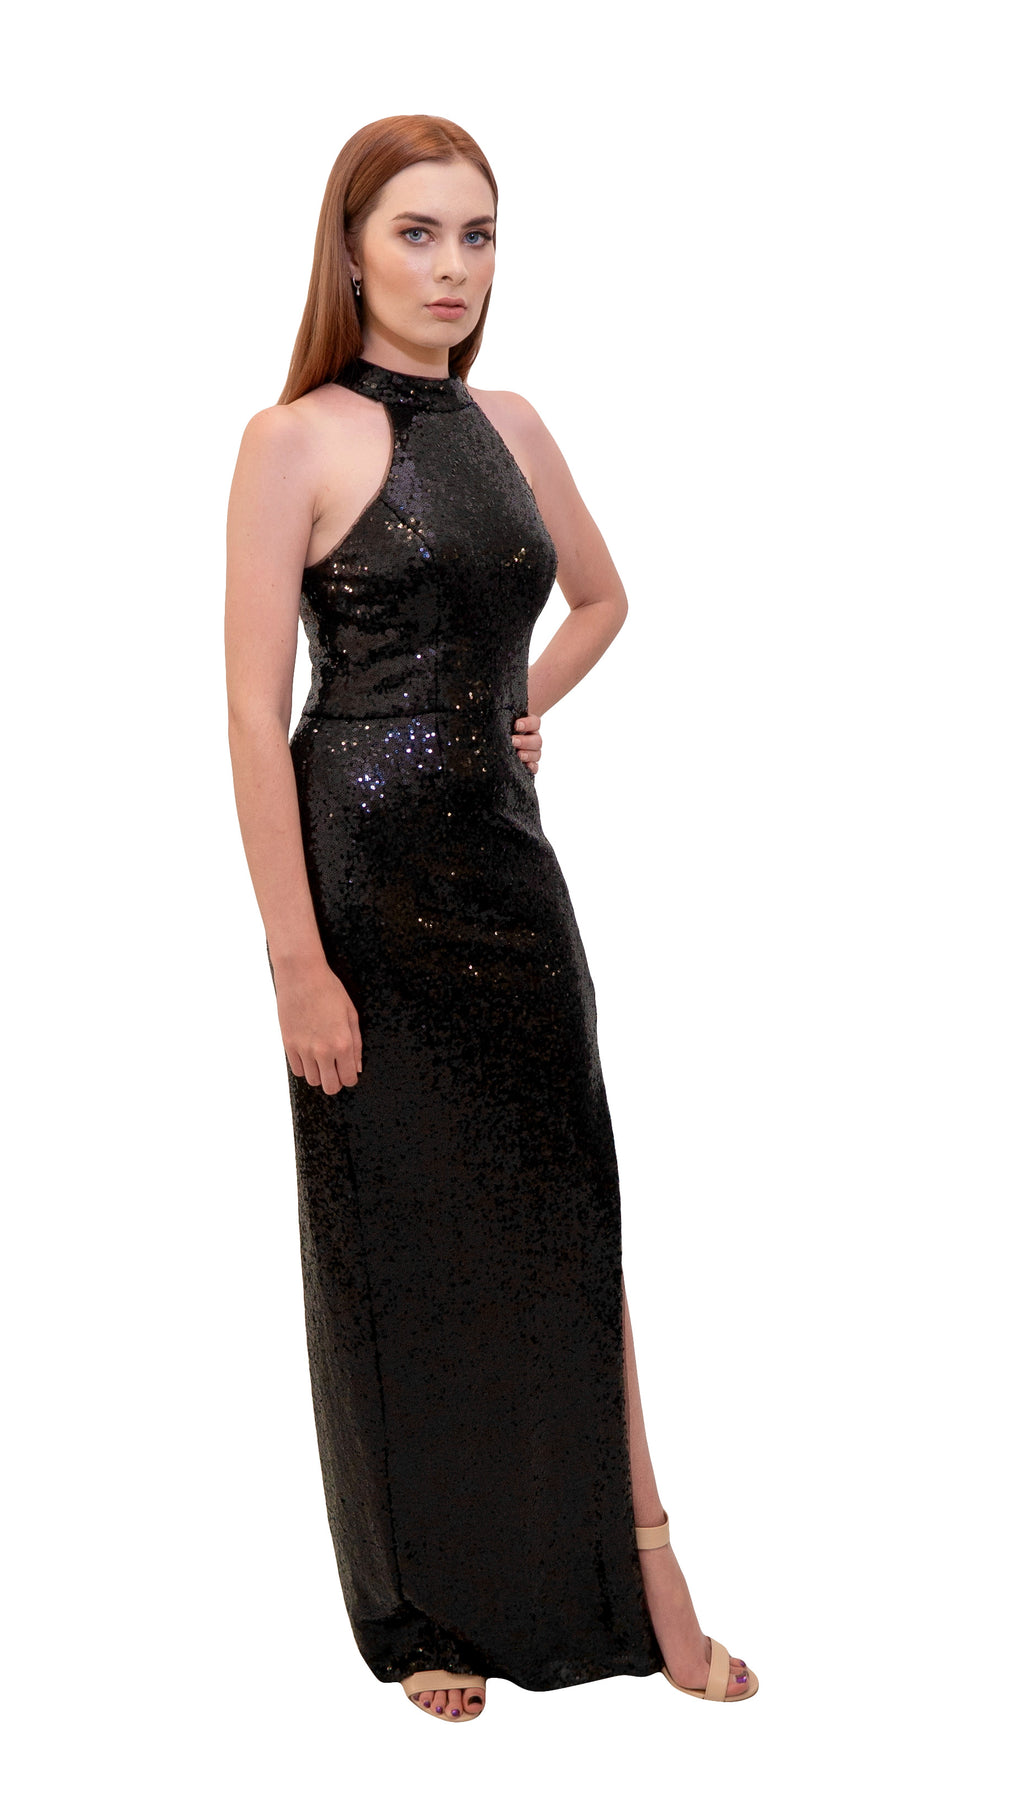 Bariano Heather high neck sequin dress Black side